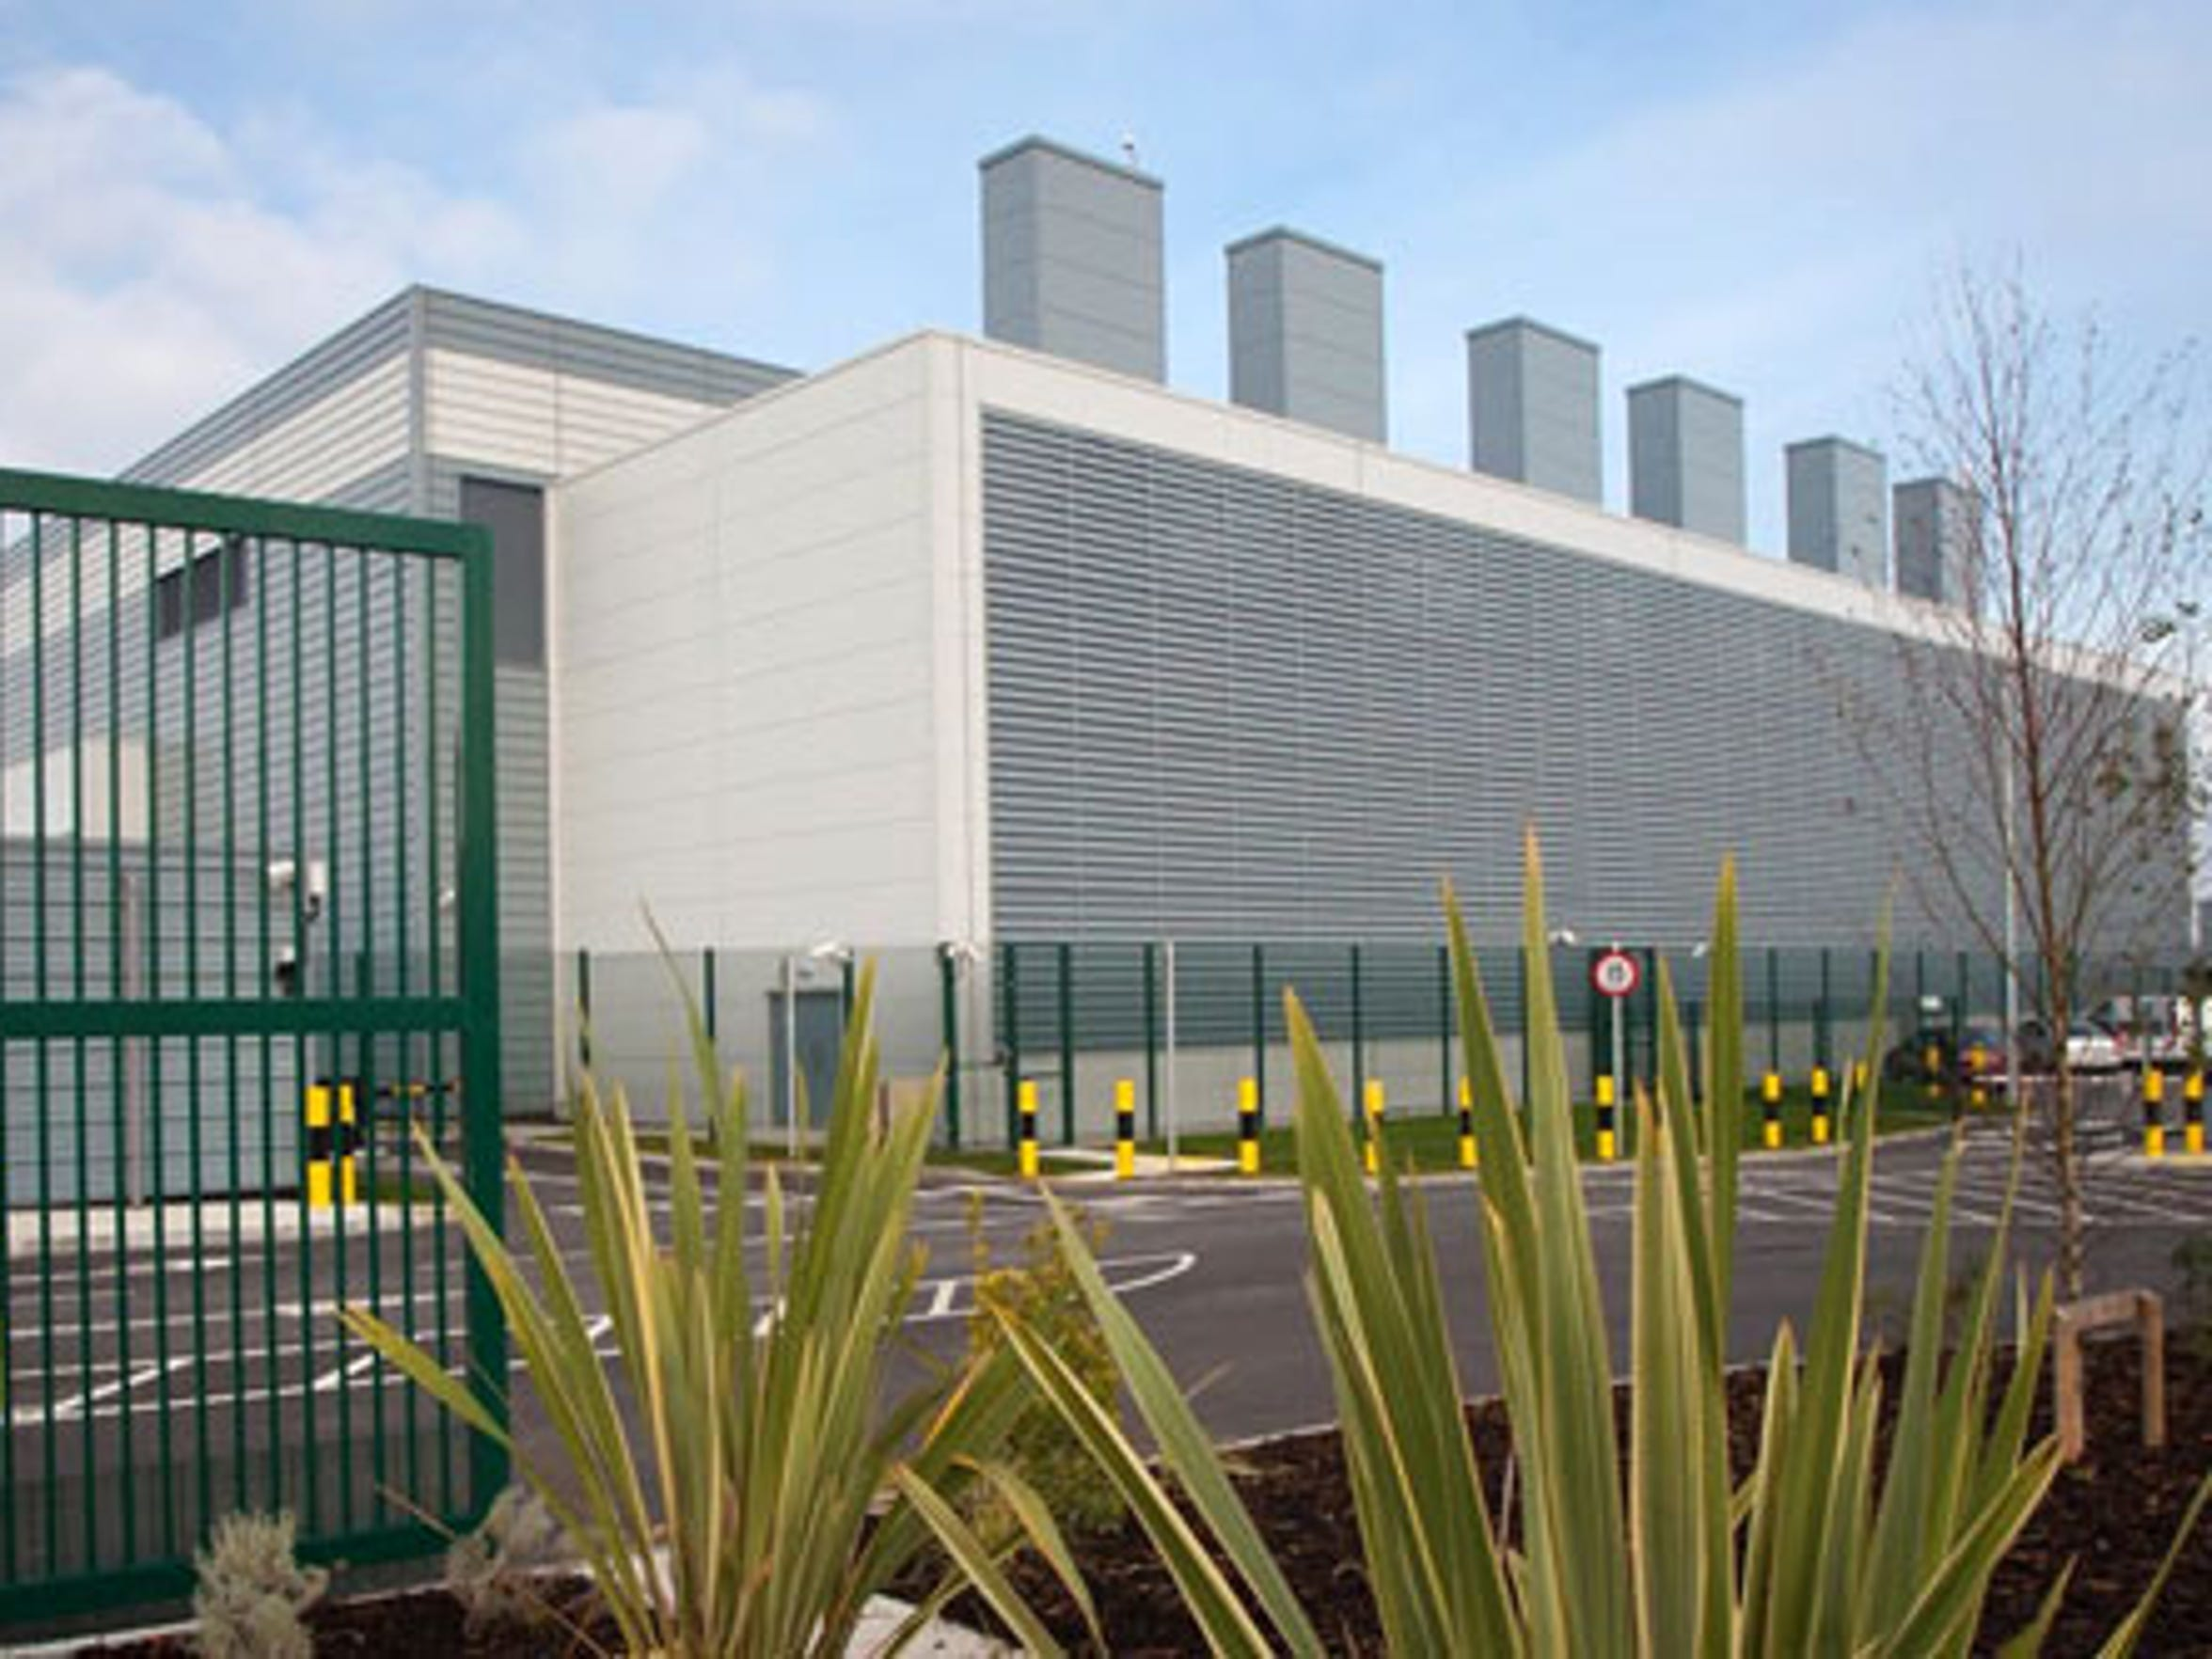 Google data center in Dublin